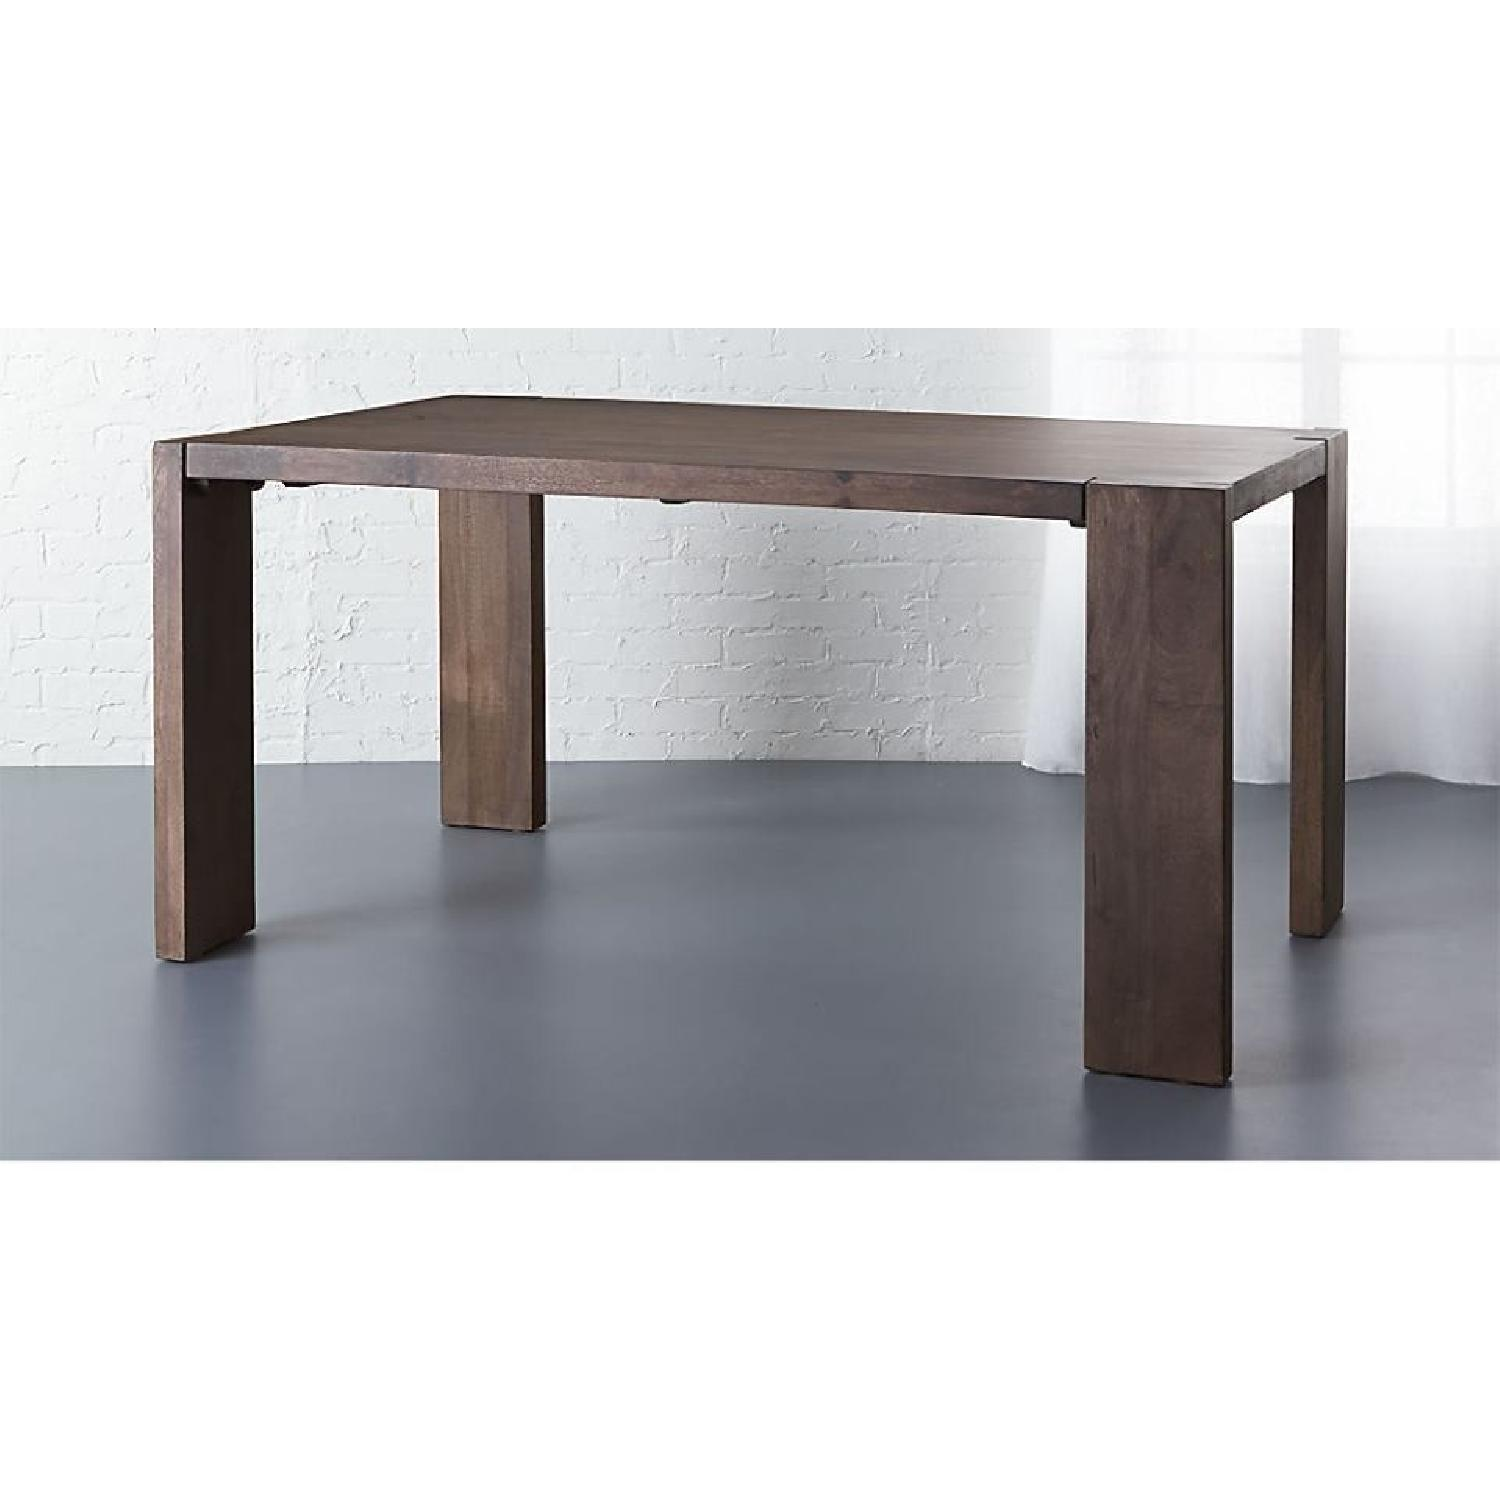 CB2 Blox Wood Dining Table